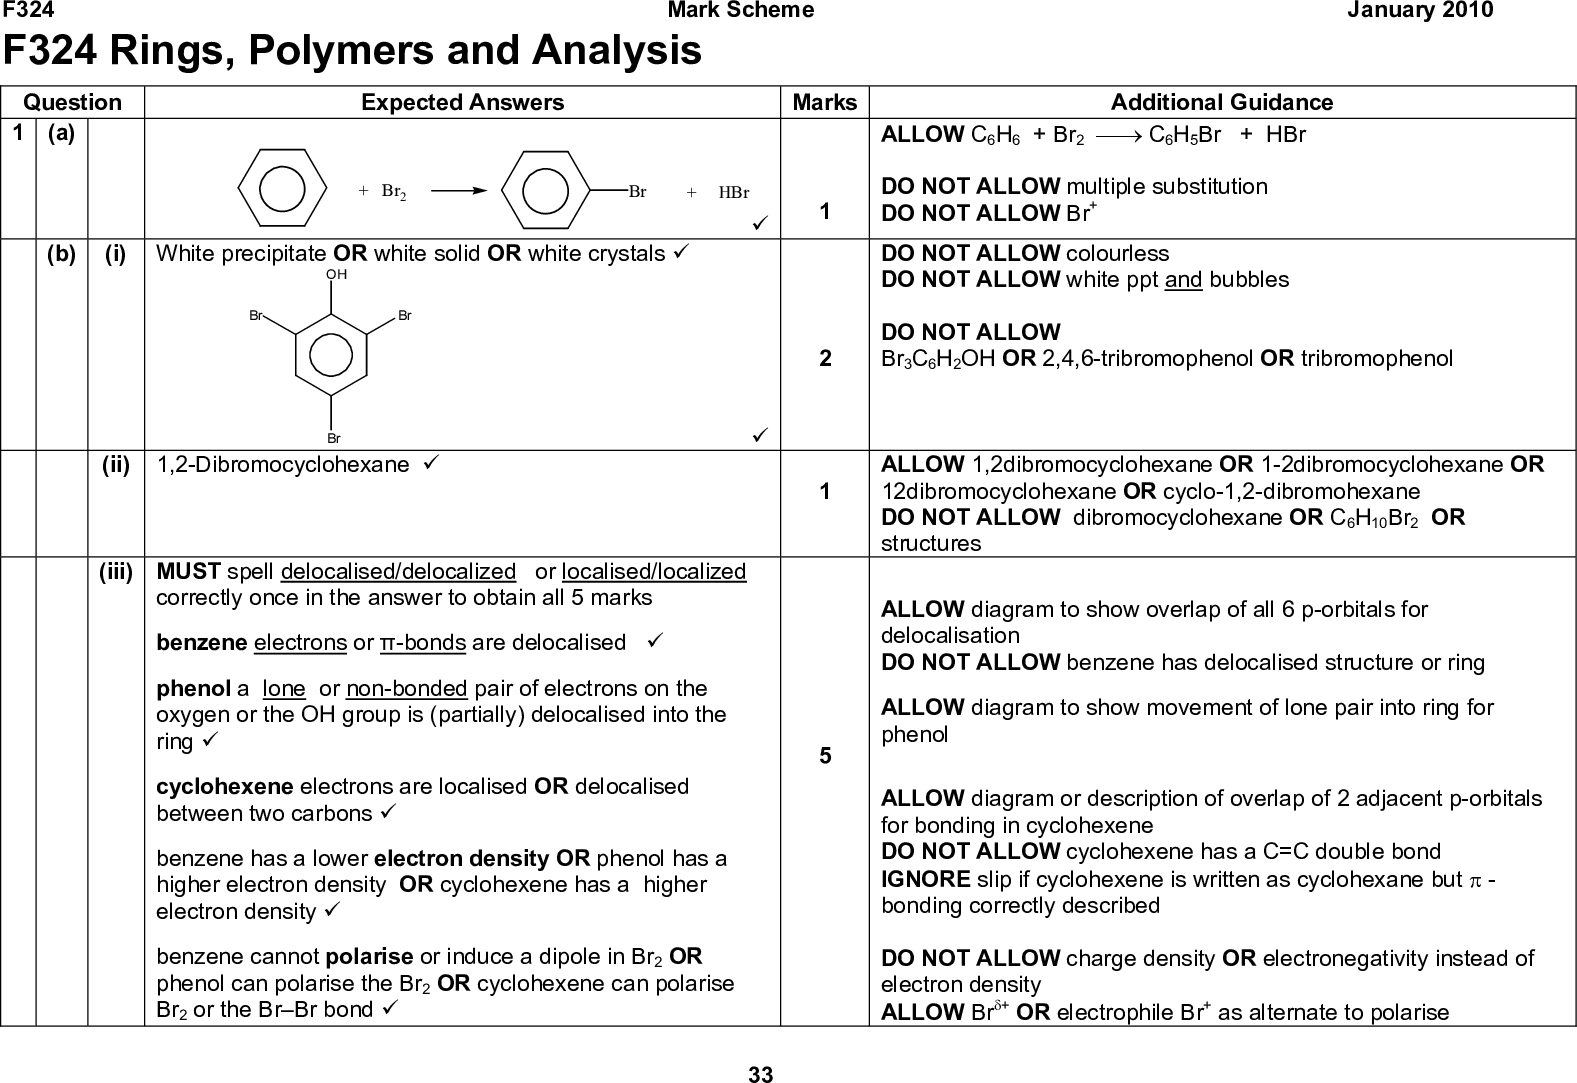 F324 F324 Rings, Polymers and Analysis Question 1 Expected Answers (a) Mark Scheme + Br2 Br + HBr (b) (i) White precipitate OR white solid OR white crystals (cid:57) OH Br Br January 2010 (cid:57) Marks 1 2 Additional Guidance ALLOW C6H6 + Br2 (cid:127)(cid:111) C6H5Br + HBr DO NOT ALLOW multiple substitution DO NOT ALLOW Br+ DO NOT ALLOW colourless DO NOT ALLOW white ppt and bubbles DO NOT ALLOW Br3C6H2OH OR 2,4,6-tribromophenol OR tribromophenol (ii) 1,2-Dibromocyclohexane (cid:57) Br (cid:57) (iii) MUST spell delocalised/delocalized or localised/localized correctly once in the answer to obtain all 5 marks benzene electrons or -bonds are delocalised (cid:57) phenol a lone or non-bonded pair of electrons on the oxygen or the OH group is (partially) delocalised into the ring (cid:57) cyclohexene electrons are localised OR delocalised between two carbons (cid:57) benzene has a lower electron density OR phenol has a higher electron density OR cyclohexene has a higher electron density (cid:57) benzene cannot polarise or induce a dipole in Br2 OR phenol can polarise the Br2 OR cyclohexene can polarise Br2 or the BrBr bond (cid:57) 33 ALLOW 1,2dibromocyclohexane OR 1-2dibromocyclohexane OR 12dibromocyclohexane OR cyclo-1,2-dibromohexane DO NOT ALLOW dibromocyclohexane OR C6H10Br2 OR structures ALLOW diagram to show overlap of all 6 p-orbitals for delocalisation DO NOT ALLOW benzene has delocalised structure or ring ALLOW diagram to show movement of lone pair into ring for phenol ALLOW diagram or description of overlap of 2 adjacent p-orbitals for bonding in cyclohexene DO NOT ALLOW cyclohexene has a C=C double bond IGNORE slip if cyclohexene is written as cyclohexane but (cid:83) - bonding correctly described DO NOT ALLOW charge density OR electronegativity instead of electron density ALLOW Br(cid:71)+ OR electrophile Br+ as alternate to polarise<br />  F324 (c) H3C H3C Mark Scheme 5 NH2 (cid:57) +N (cid:57)(cid:57) ALLOW ECF (cid:57)(cid:57) on incorrect amine HNO2 + HC